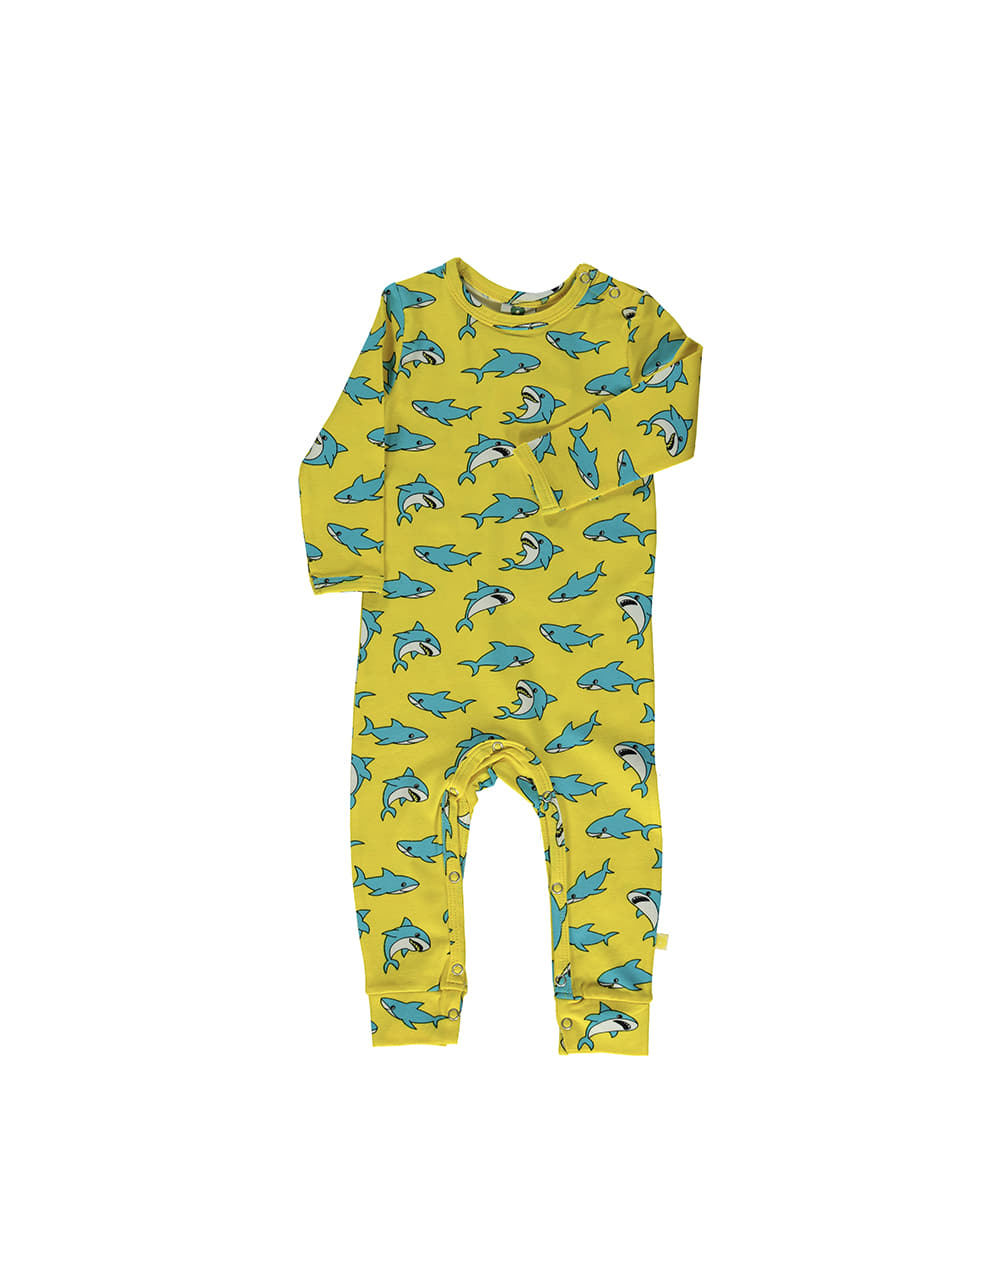 SMAFOLK  Suit with Shark  Yellow